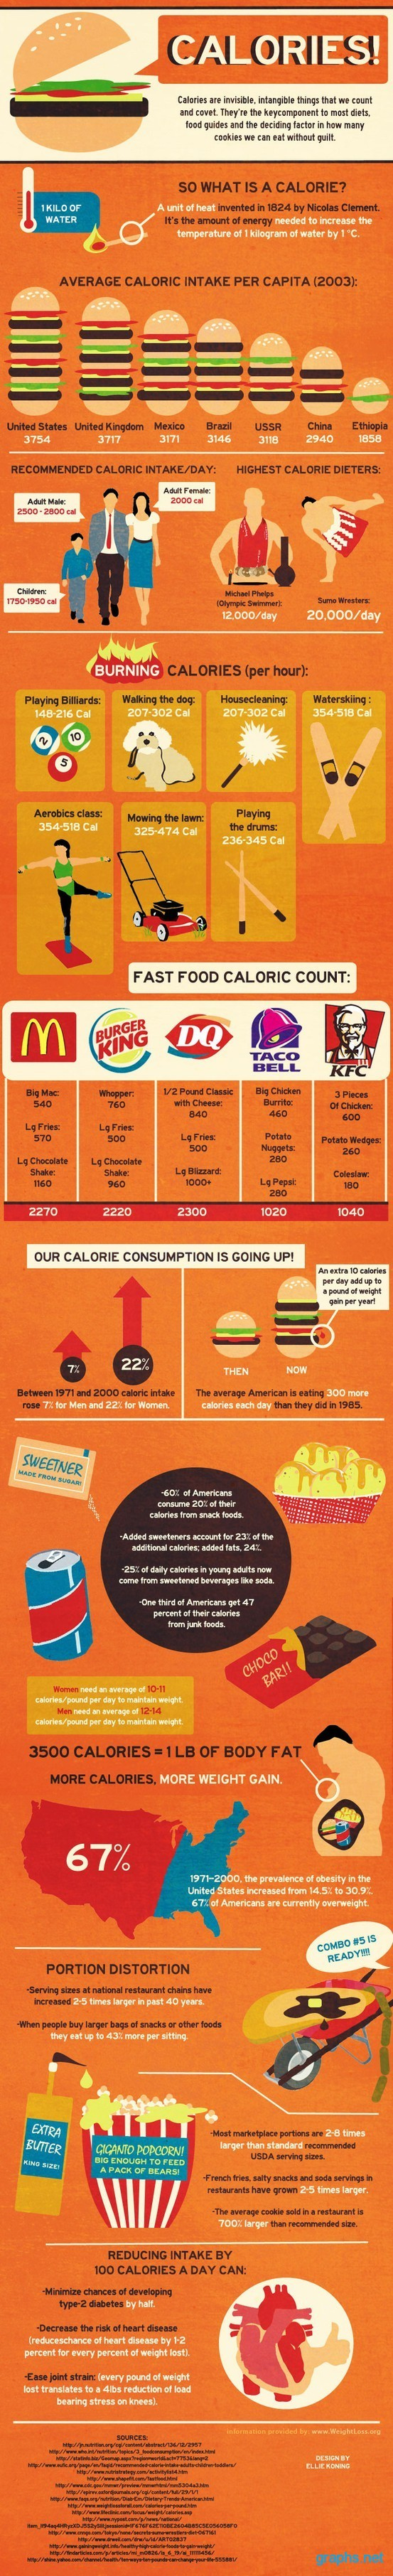 Information About Calories